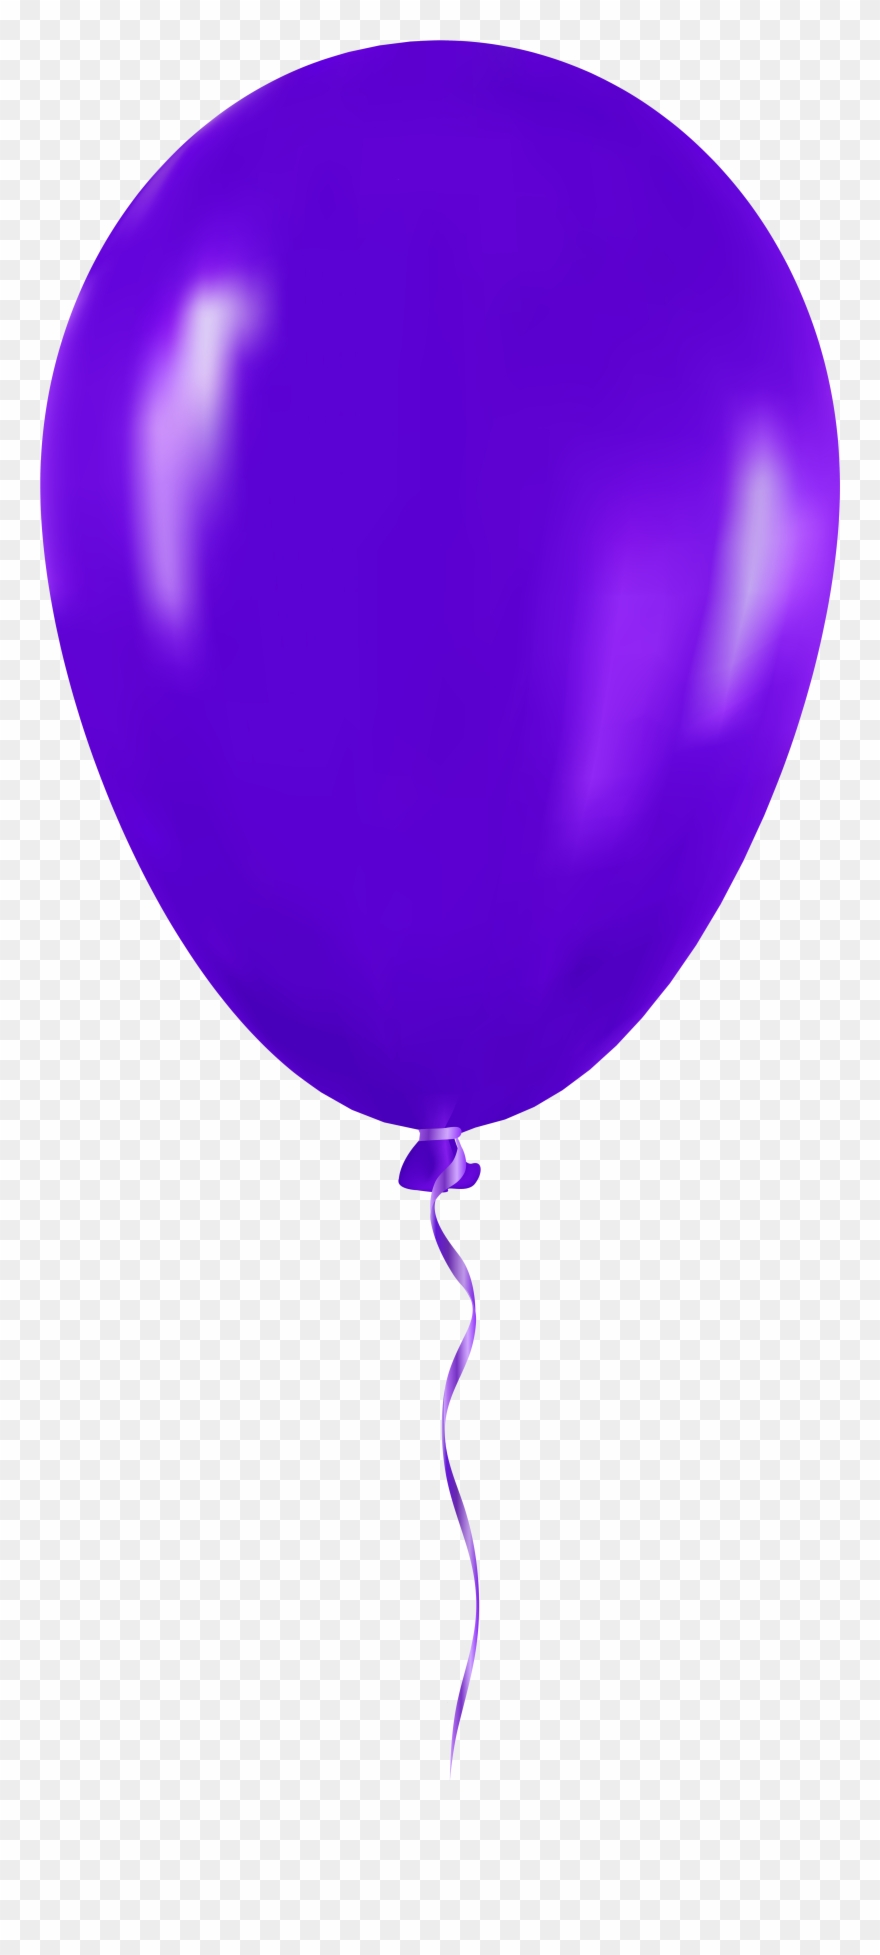 Clipart balloon purple. Png clip art of